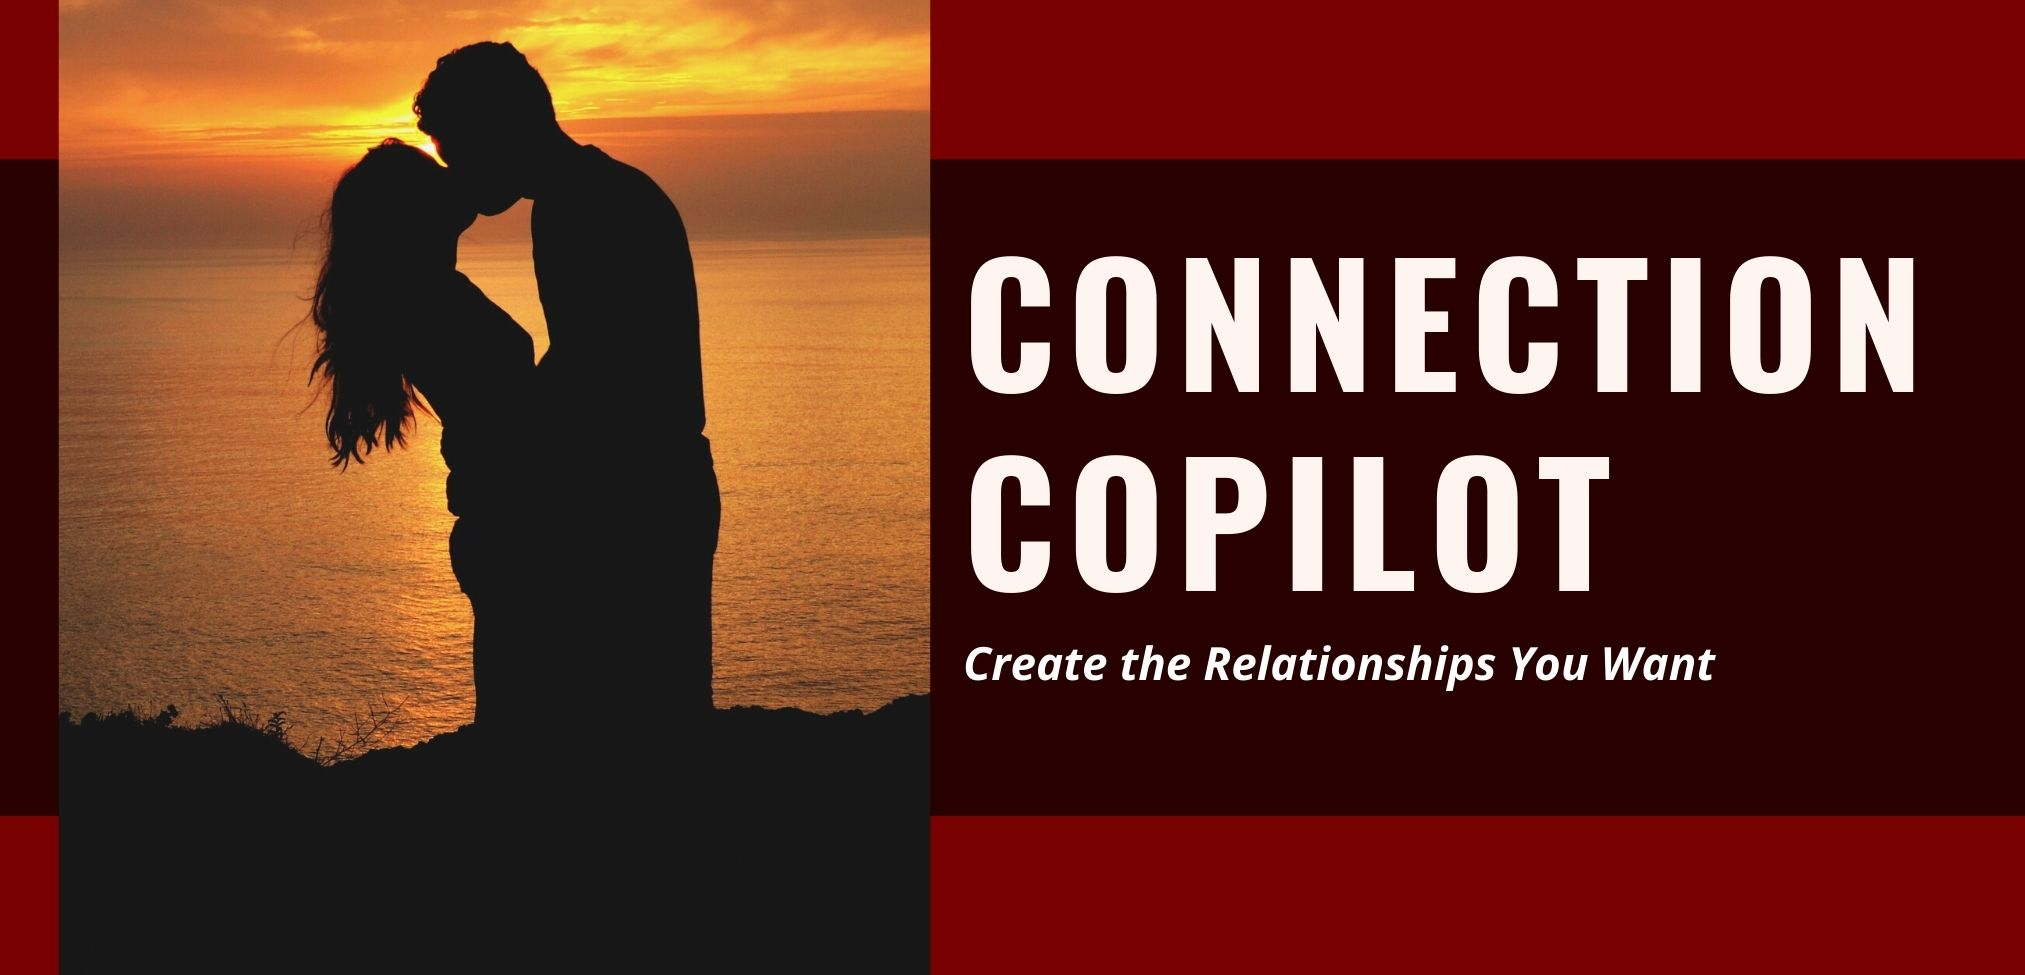 CONNECTION COPILOT BUILD THE RELATIONSHIPS YOU WANT